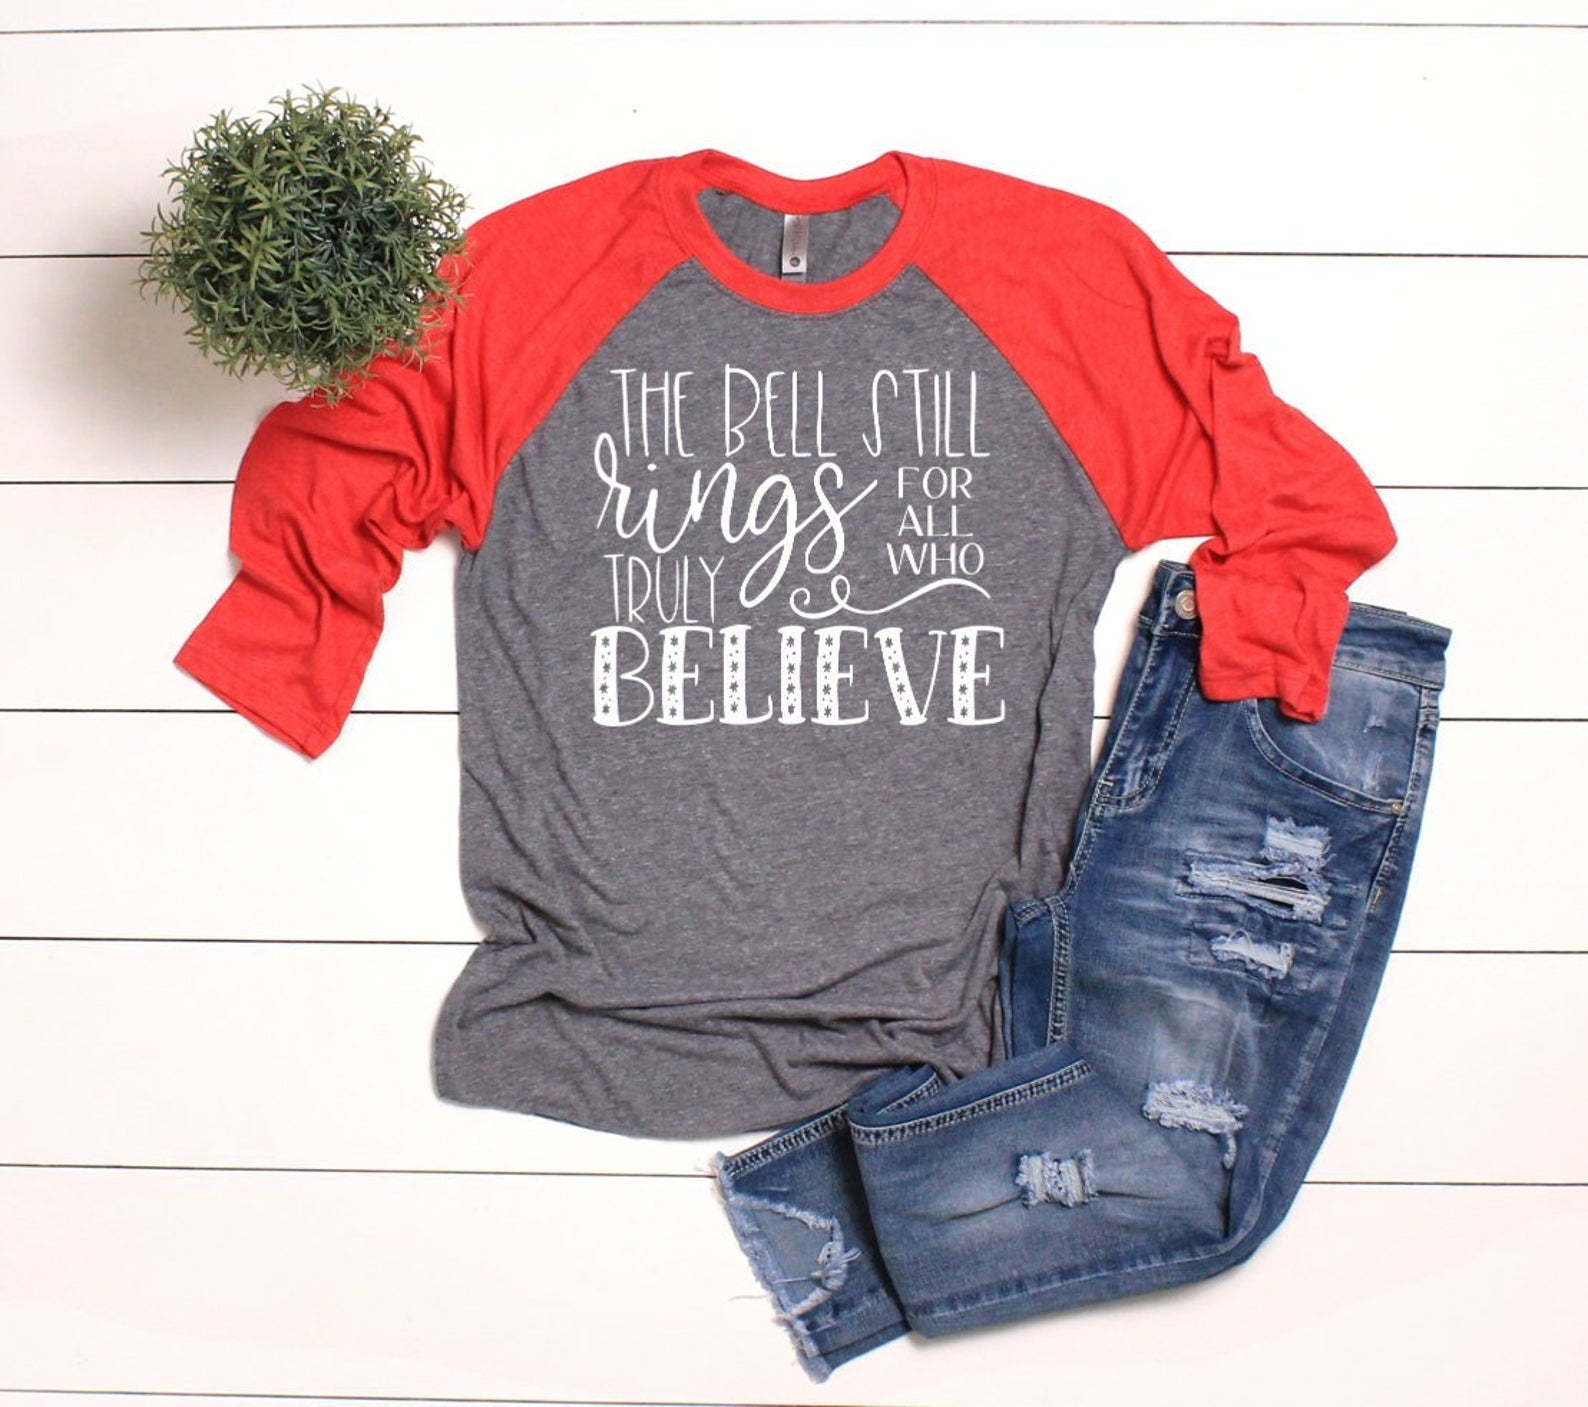 Believe Christmas 3/4 Sleeve T-shirt - Believe T-shirt - Red Christmas T-shirts - Christmas Raglans - Christmas Truly Believe Raglan